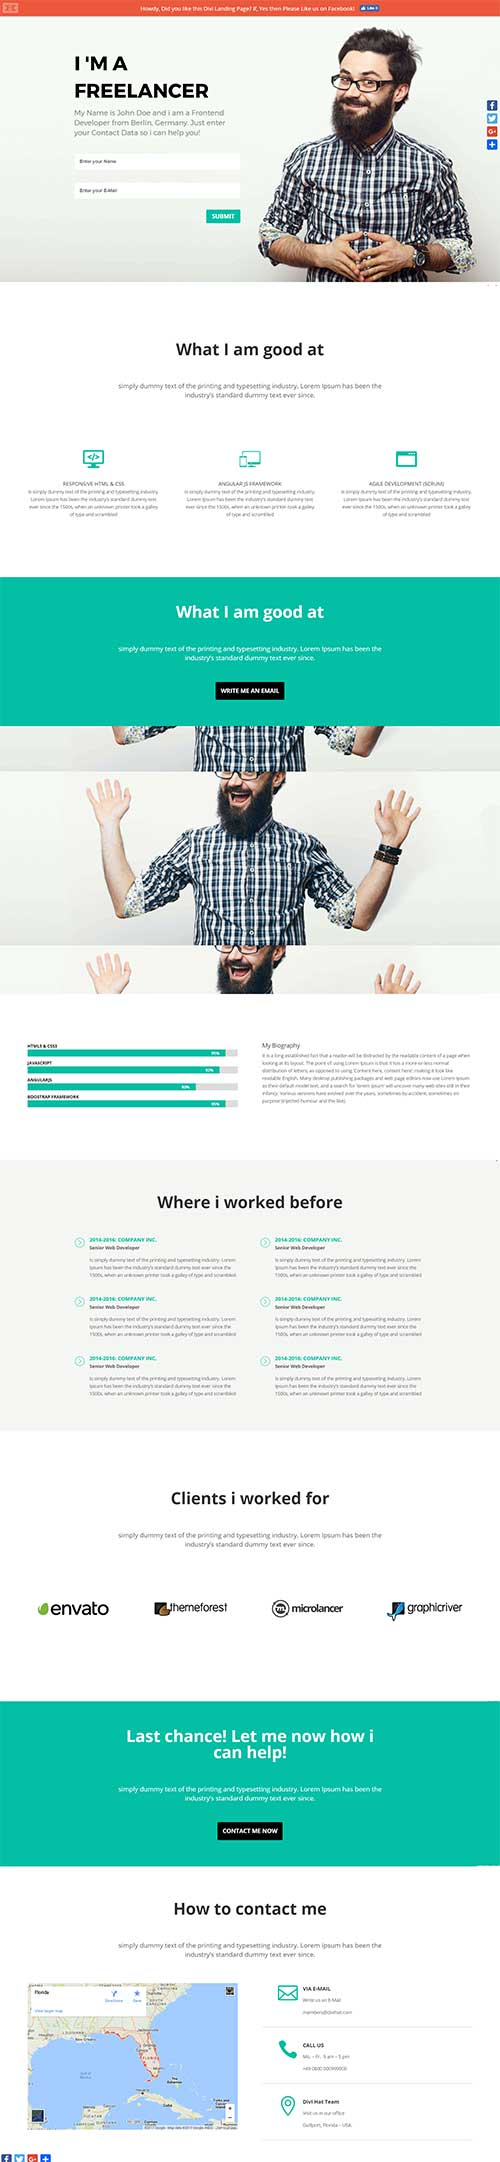 free divi landing page layout download